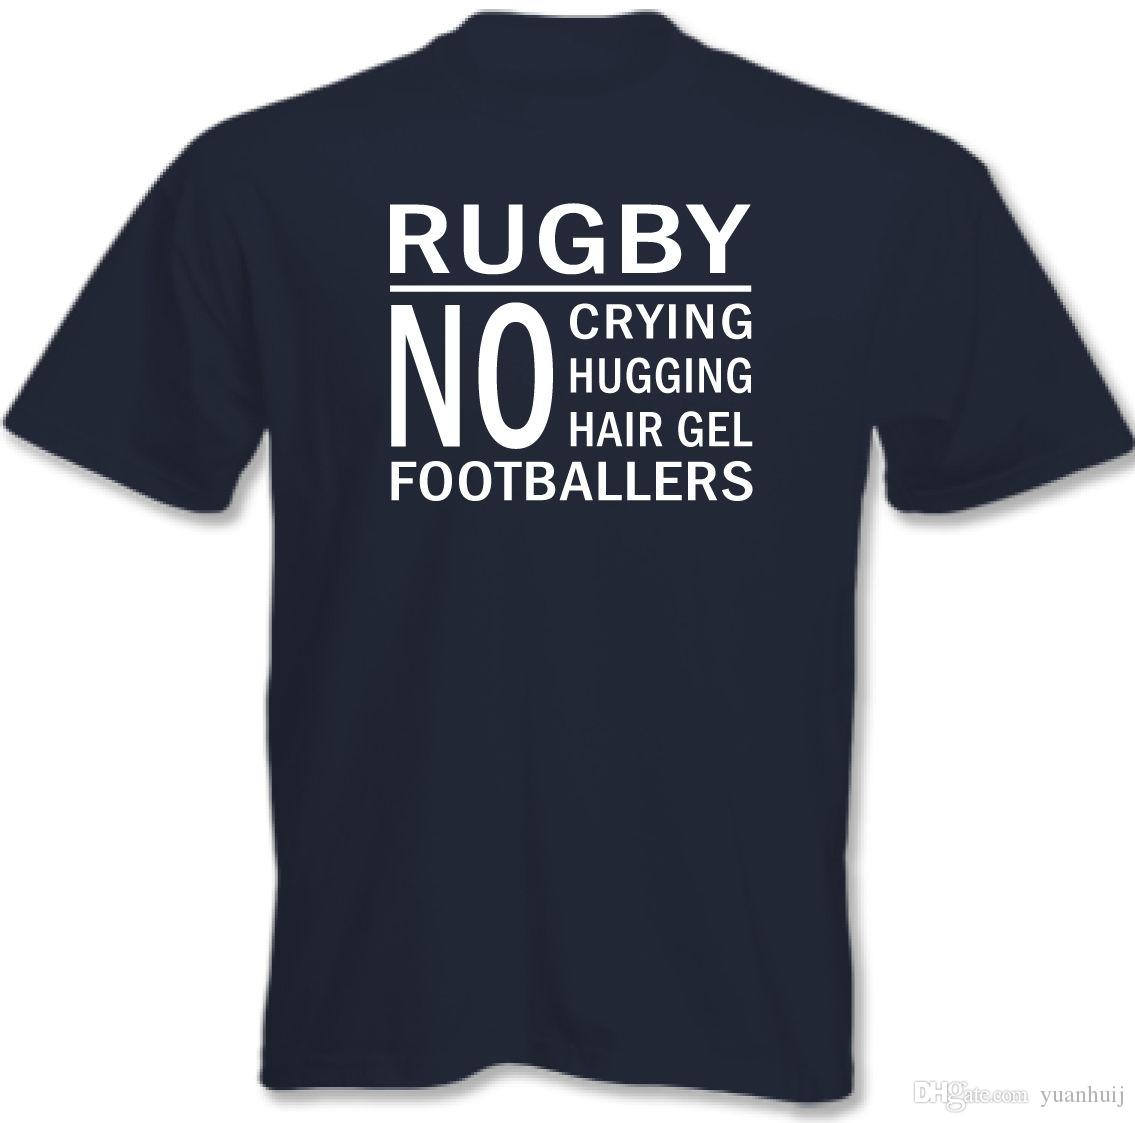 7e2543071 Rugby No Footballers Mens Funny T Shirt England Scotland Wales Ireland  Union Graphic T Shirt Design Own T Shirt From Teeotee, $10.66| DHgate.Com